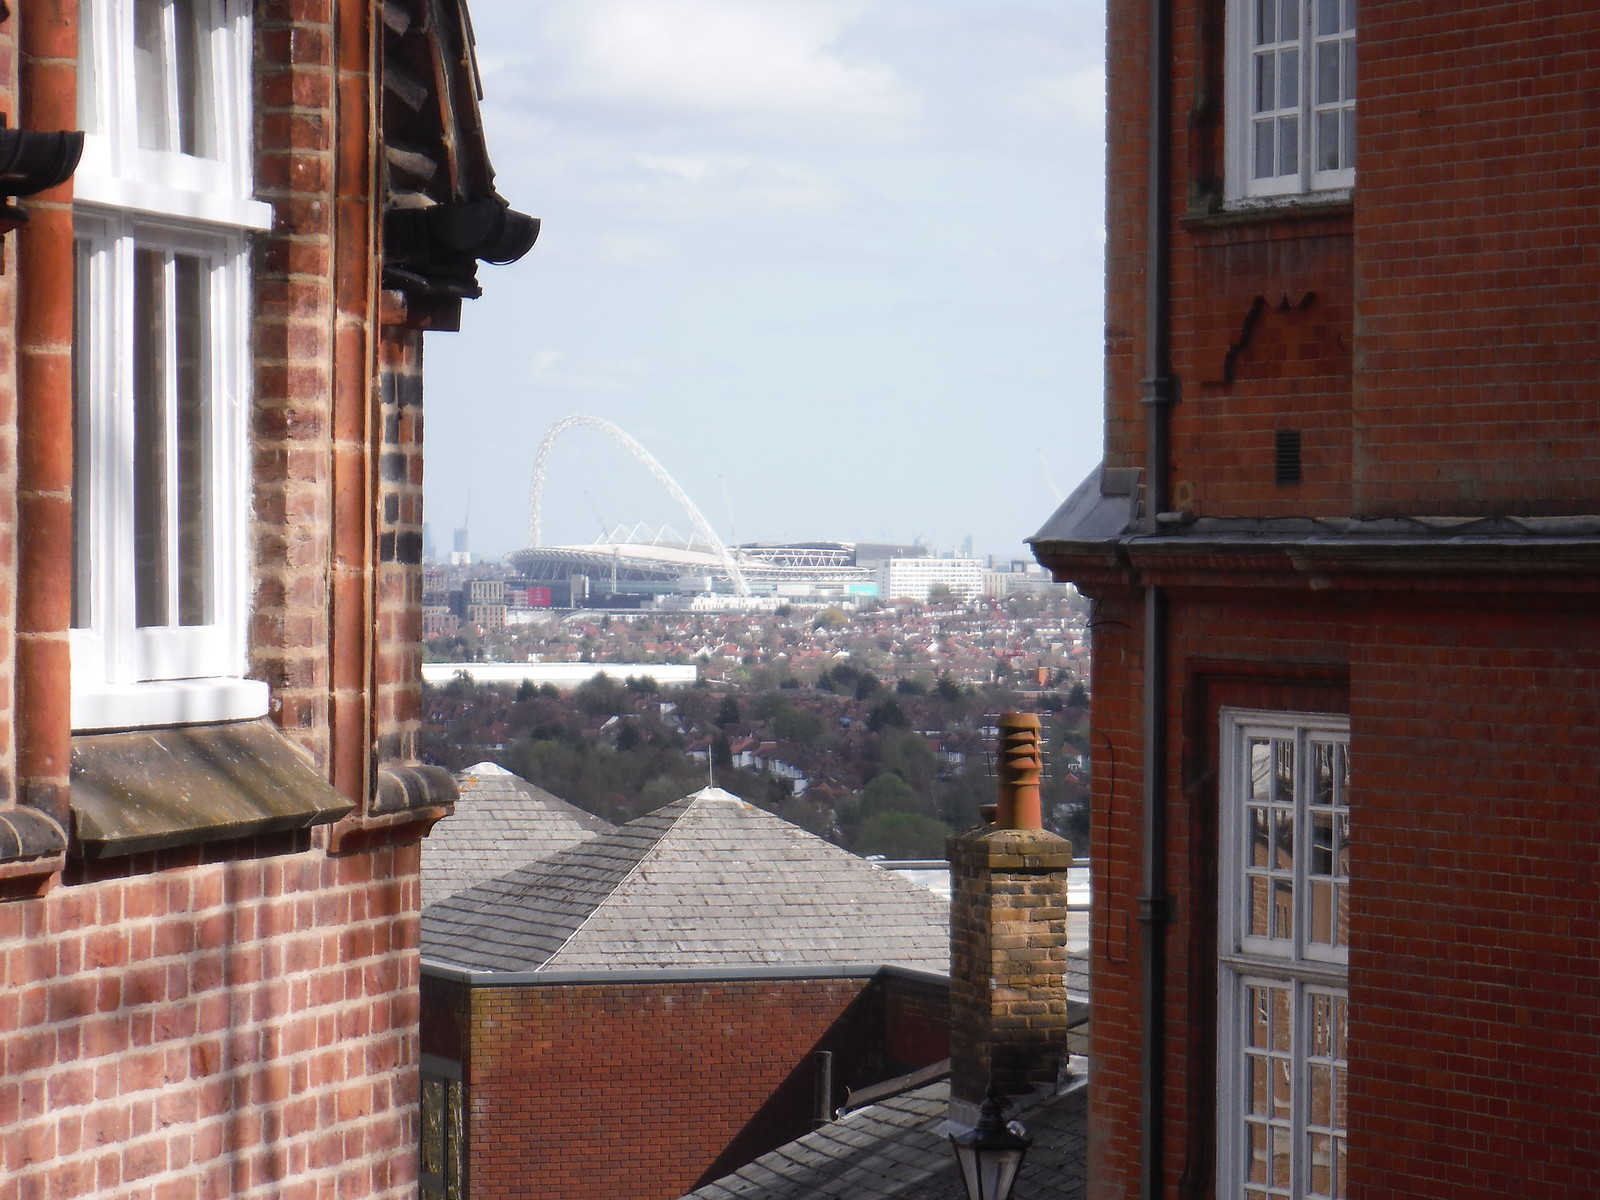 Glimpses of Wembley Stadium between houses SWC Short Walk 40 - Harrow-on-the-Hill (South Kenton or Northwick Park to Harrow-on-the-Hill)